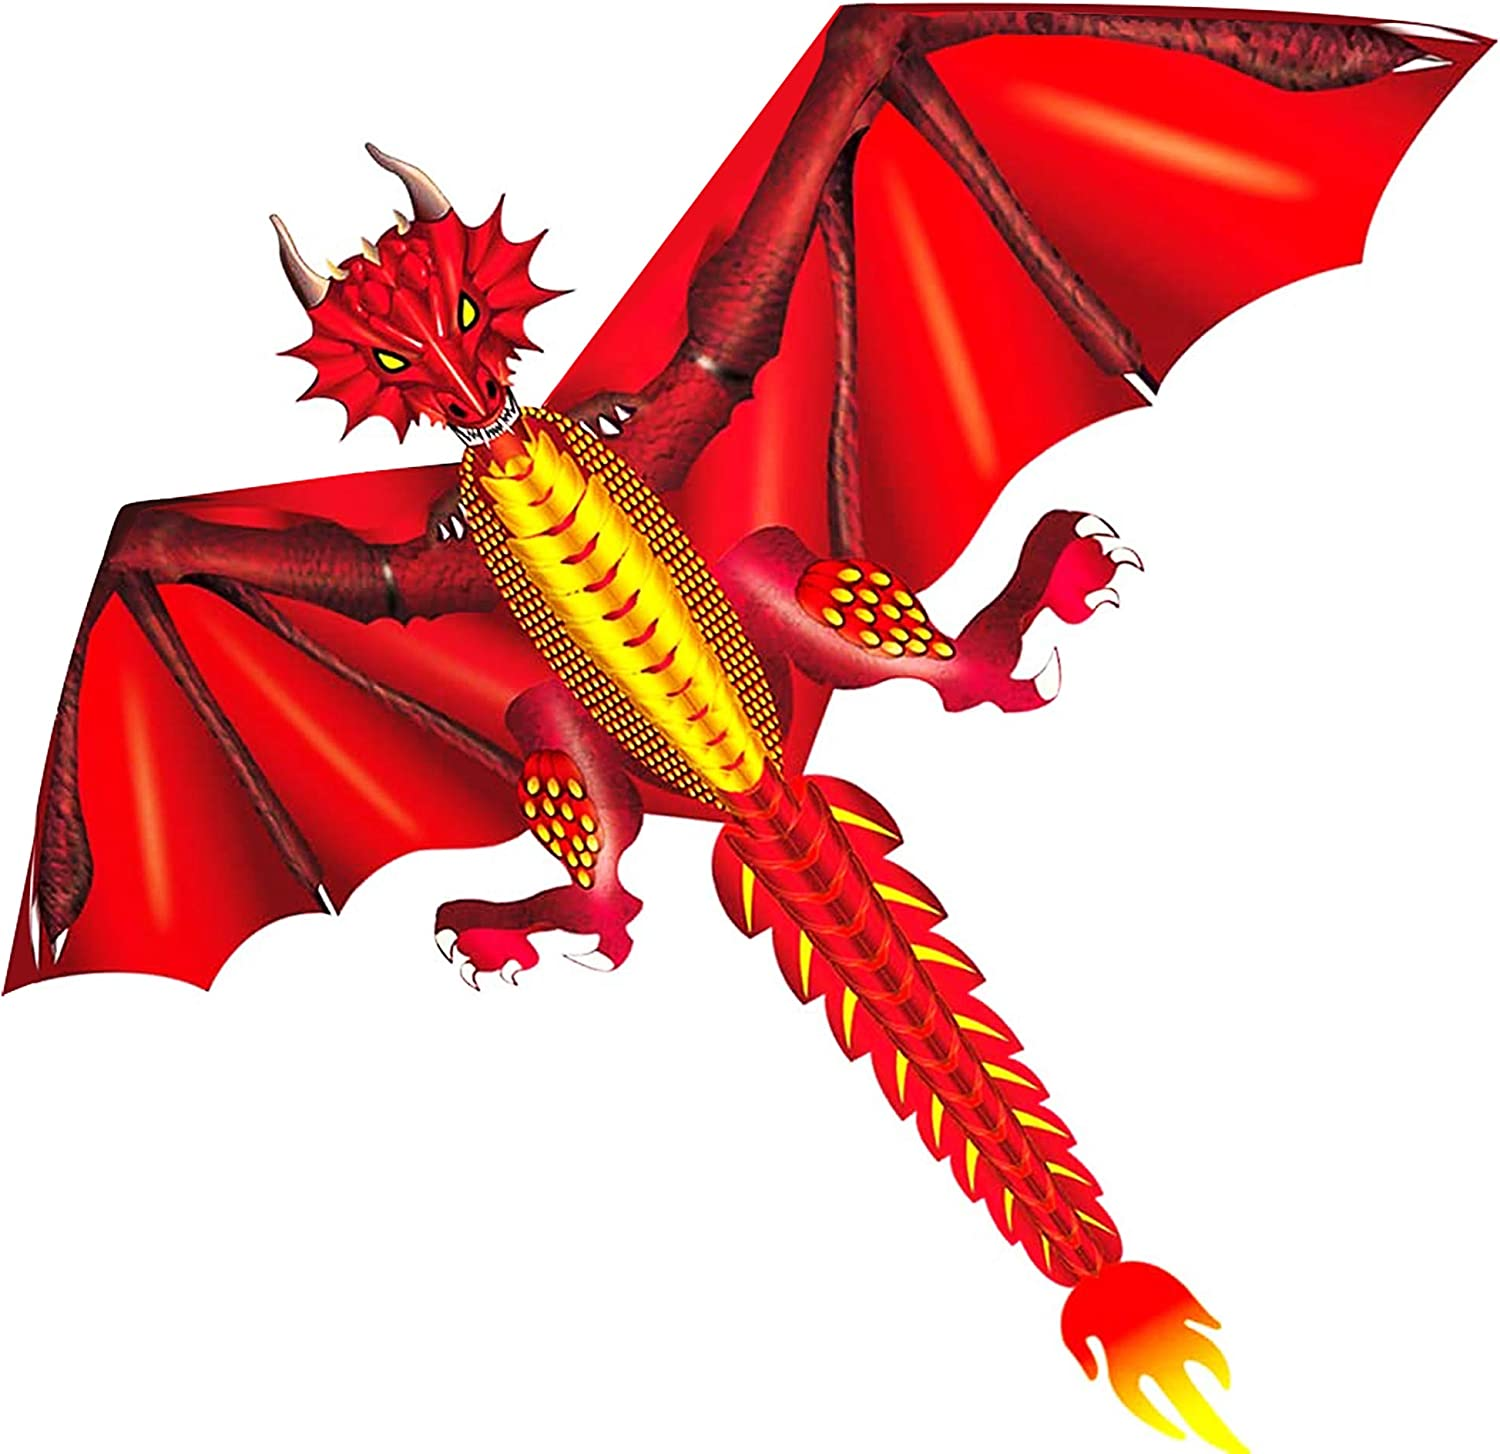 HENGDA KITE-New Ice Sales and Fiery Dragon Kite-Easy Fly-52inch 6 x Max 55% OFF to